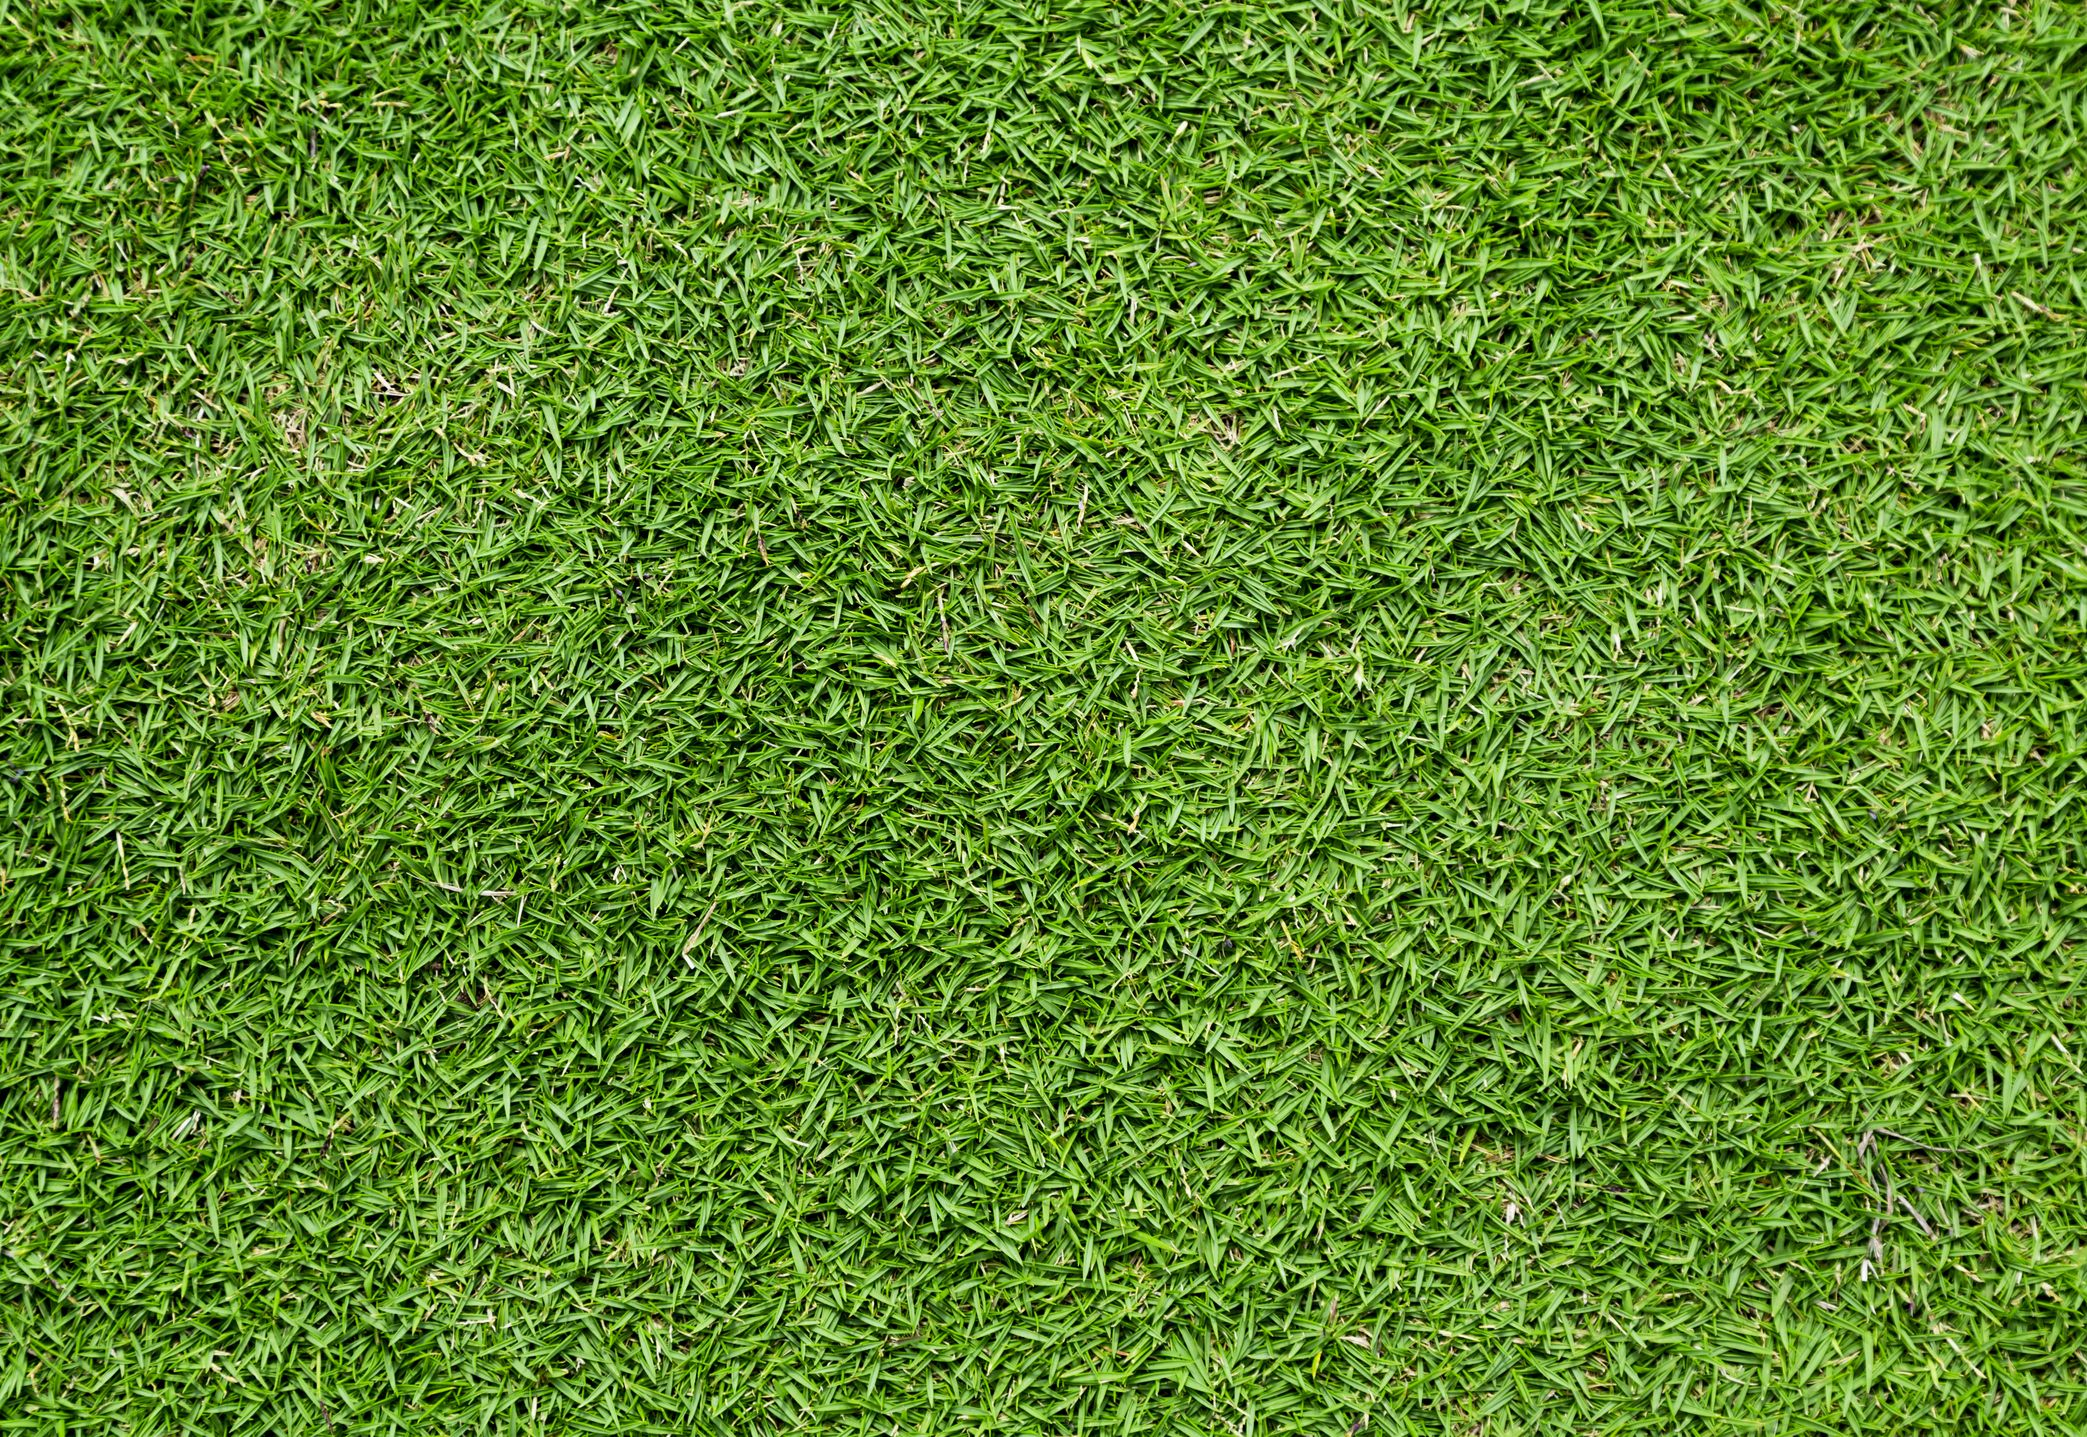 The Most Popular Types Of Lawn Grass What Type Of Grass To Grow